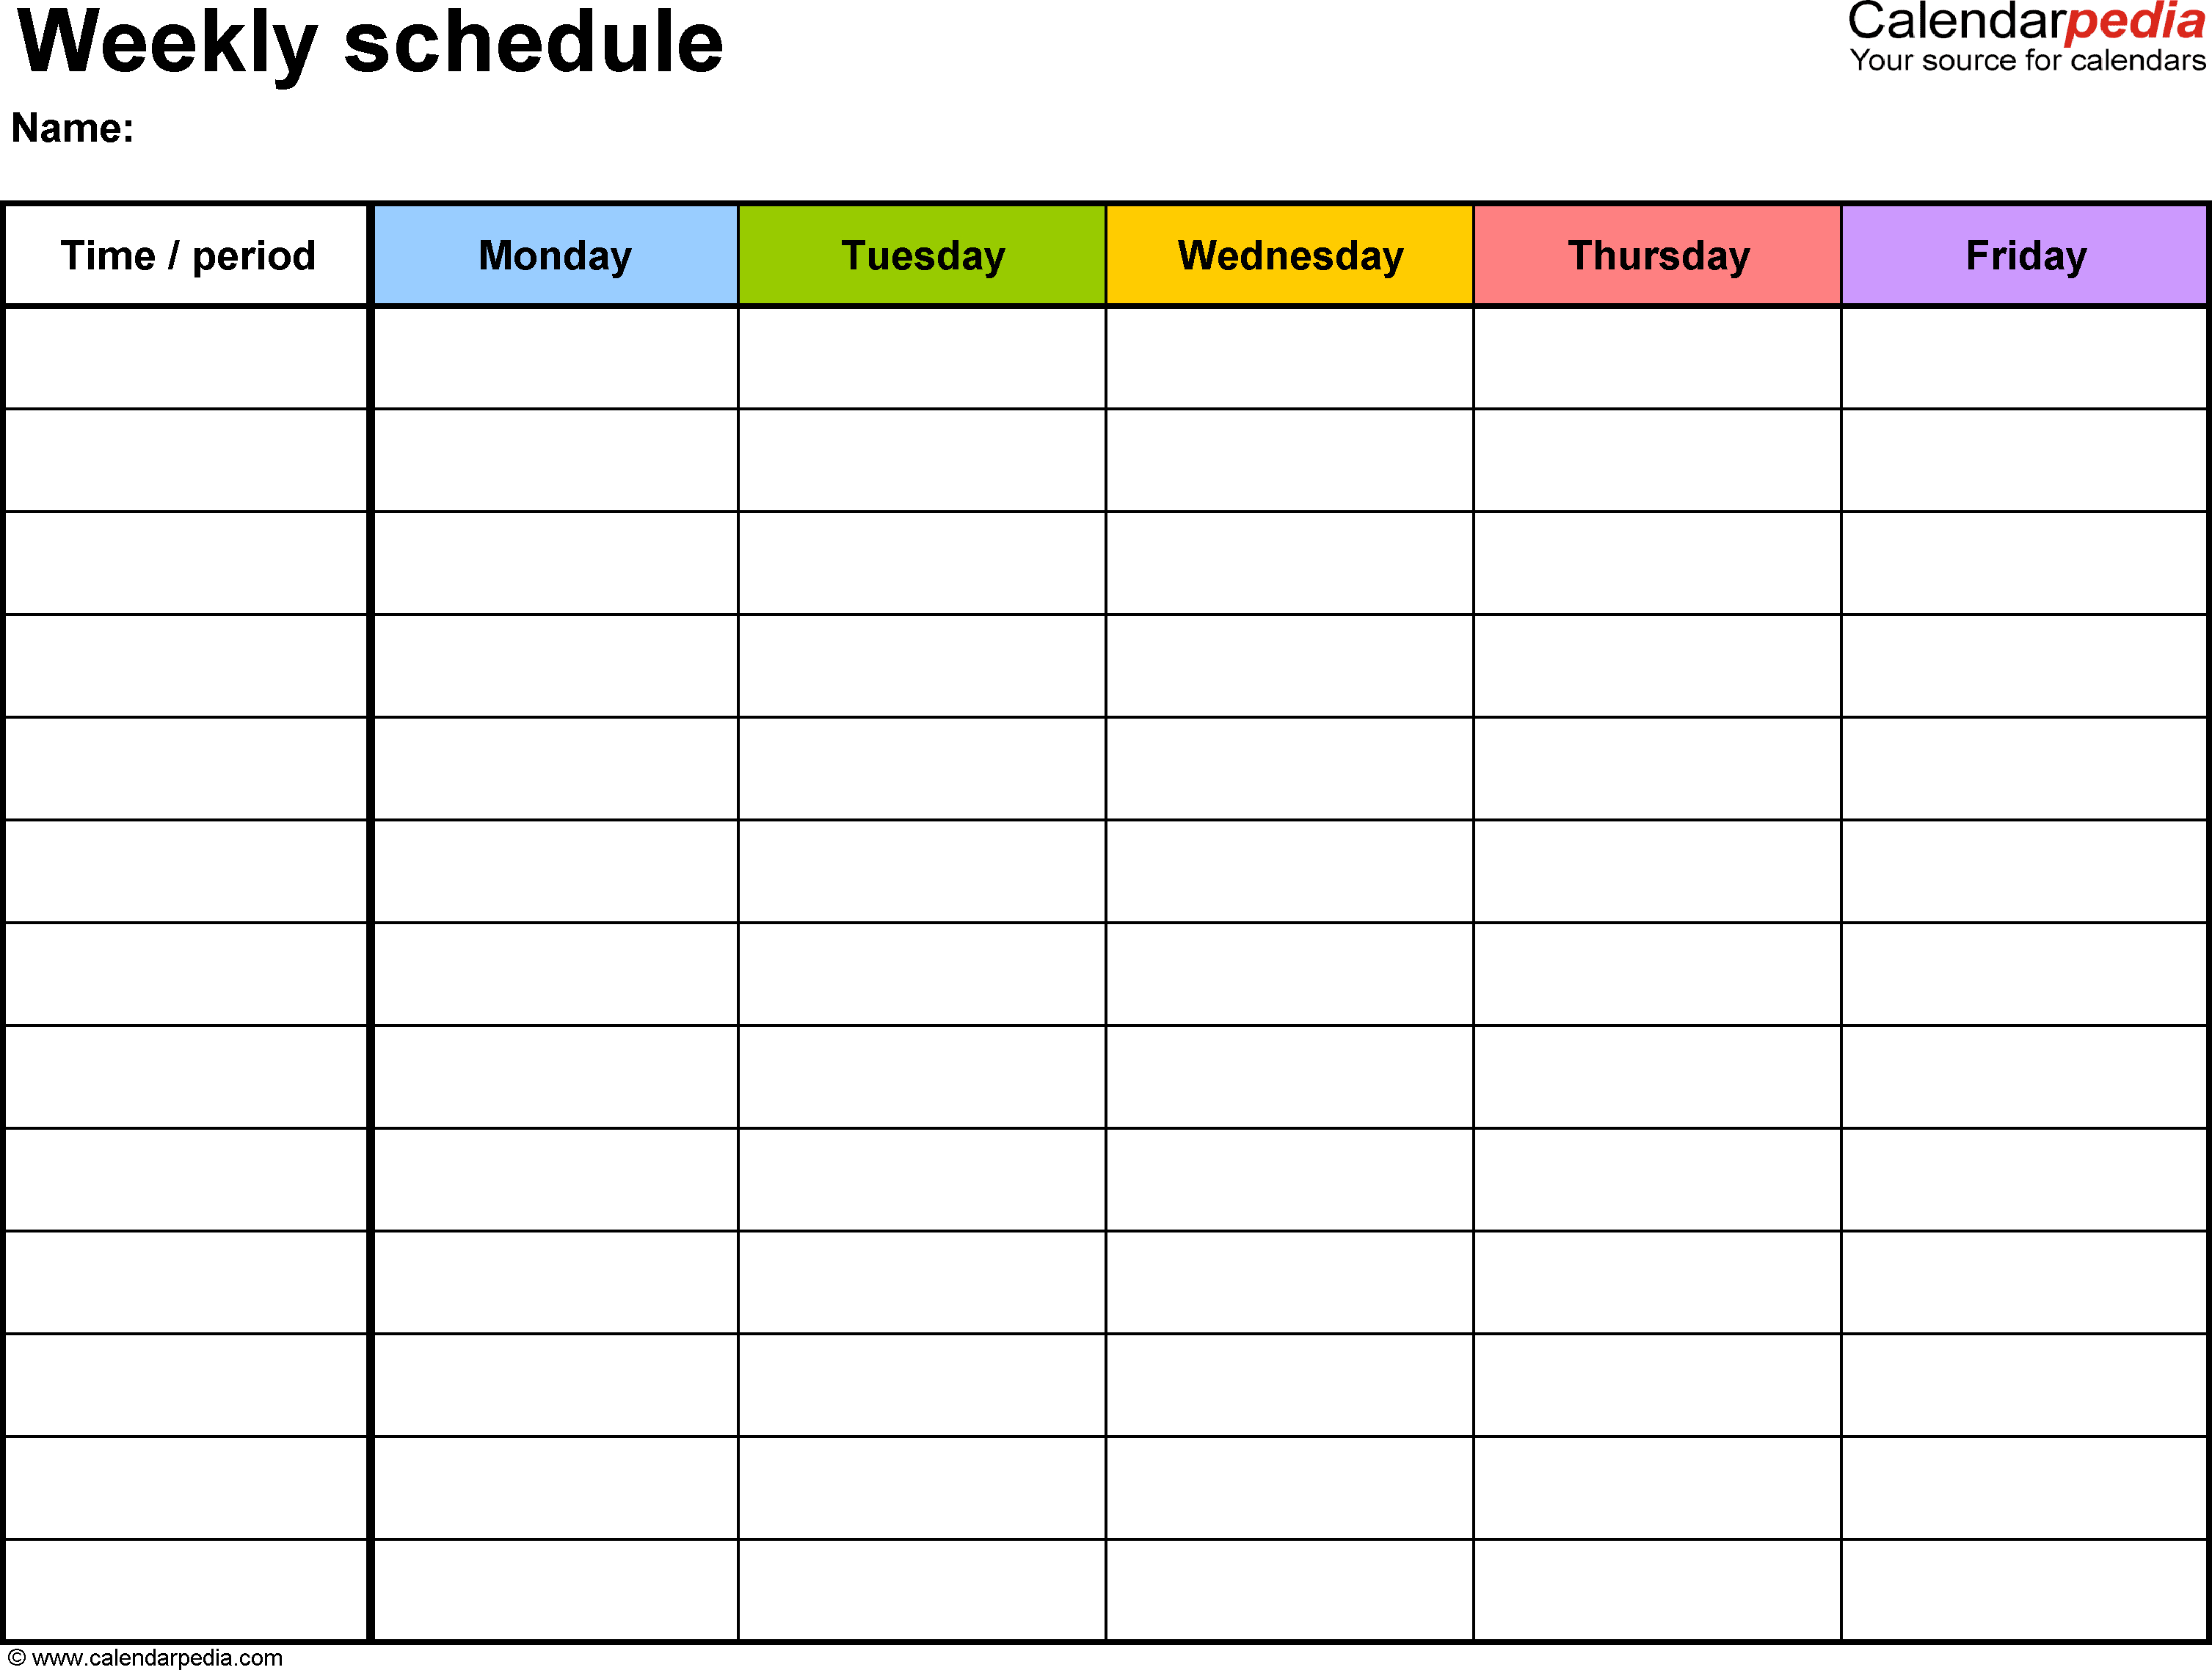 Weekly Schedule Template For Pdf Version 1: Landscape, 1 Schedule Sheet Monday To Friday